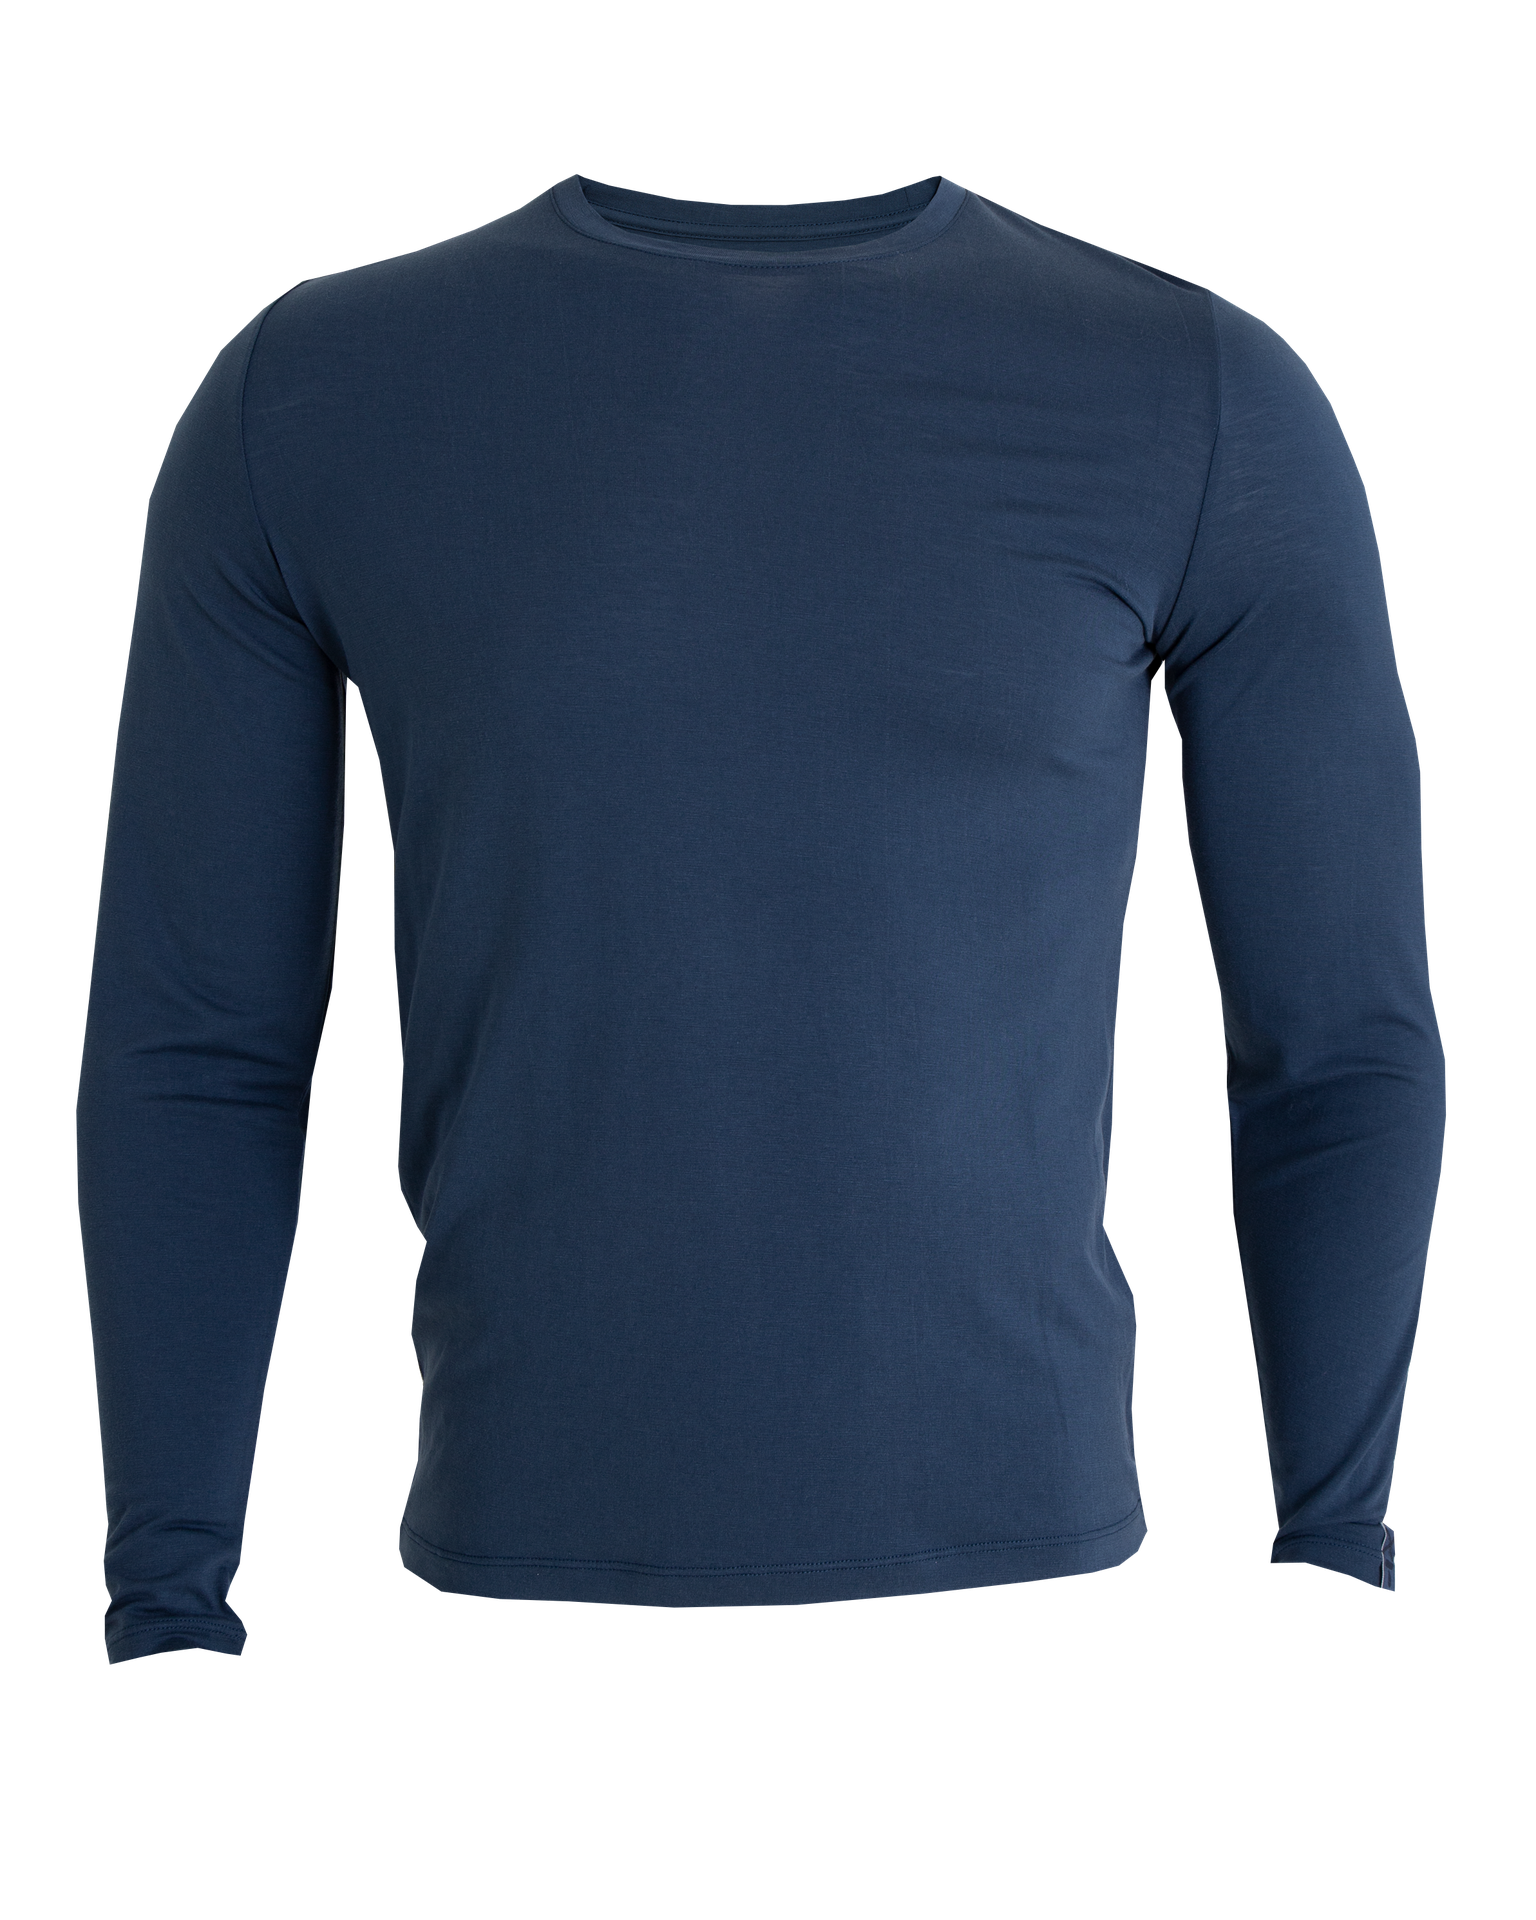 Tufte Mens Light Wool Long Sleeve